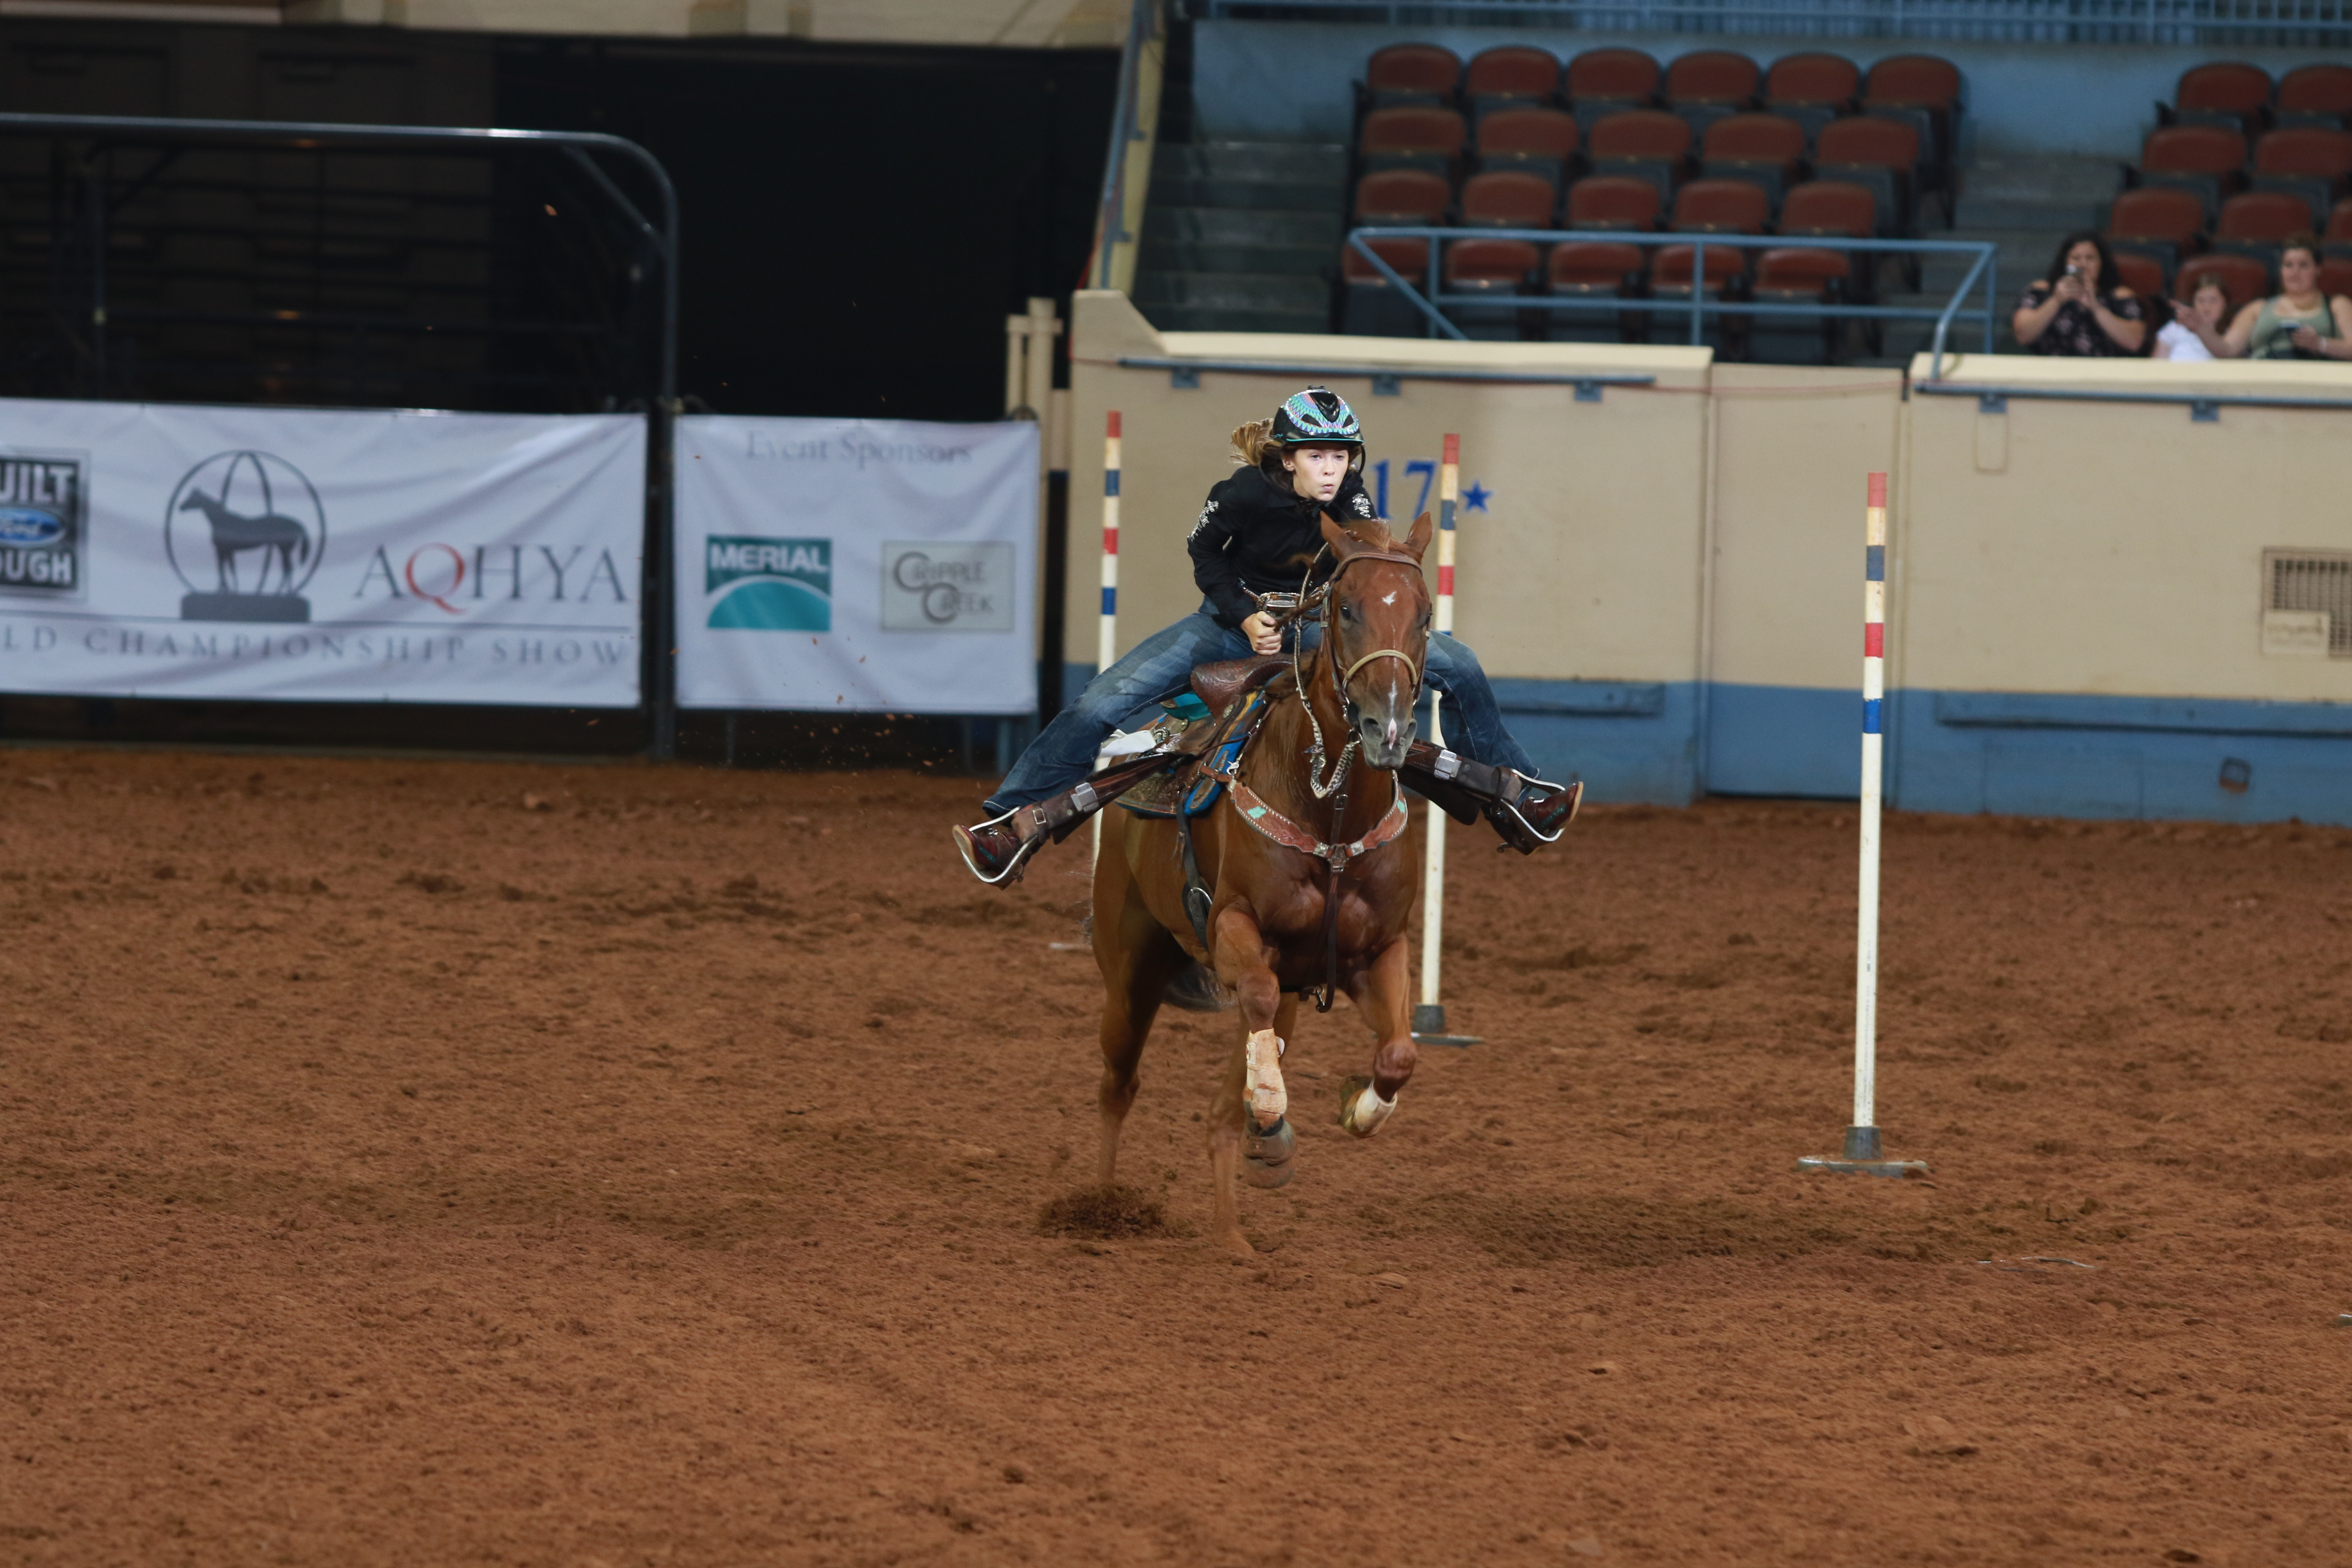 A girl in a helmet runs down a line of poles on her horse.